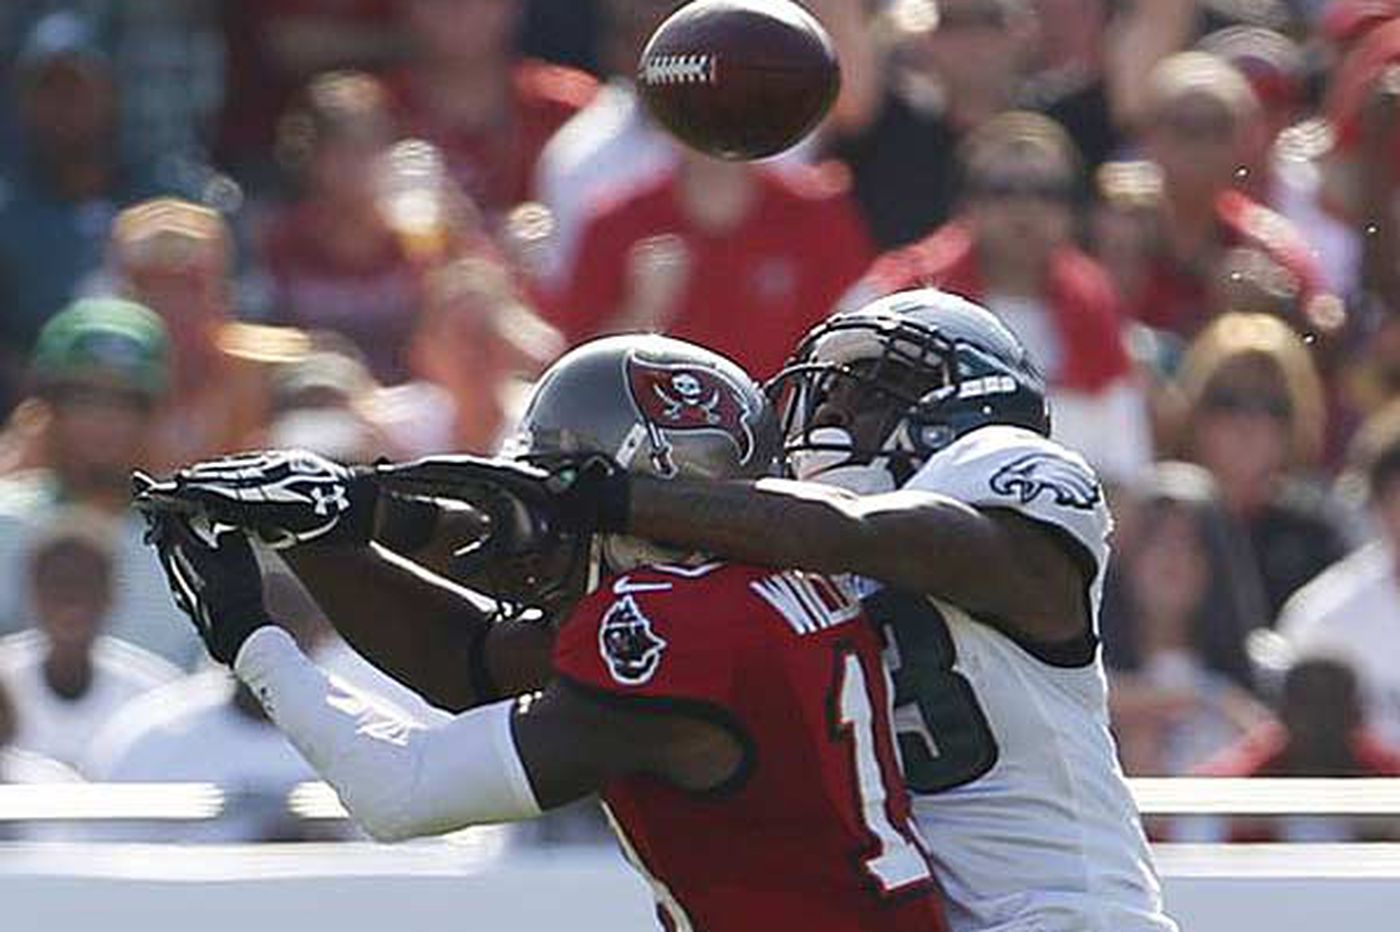 Not a work of art, but Eagles persevere against Bucs